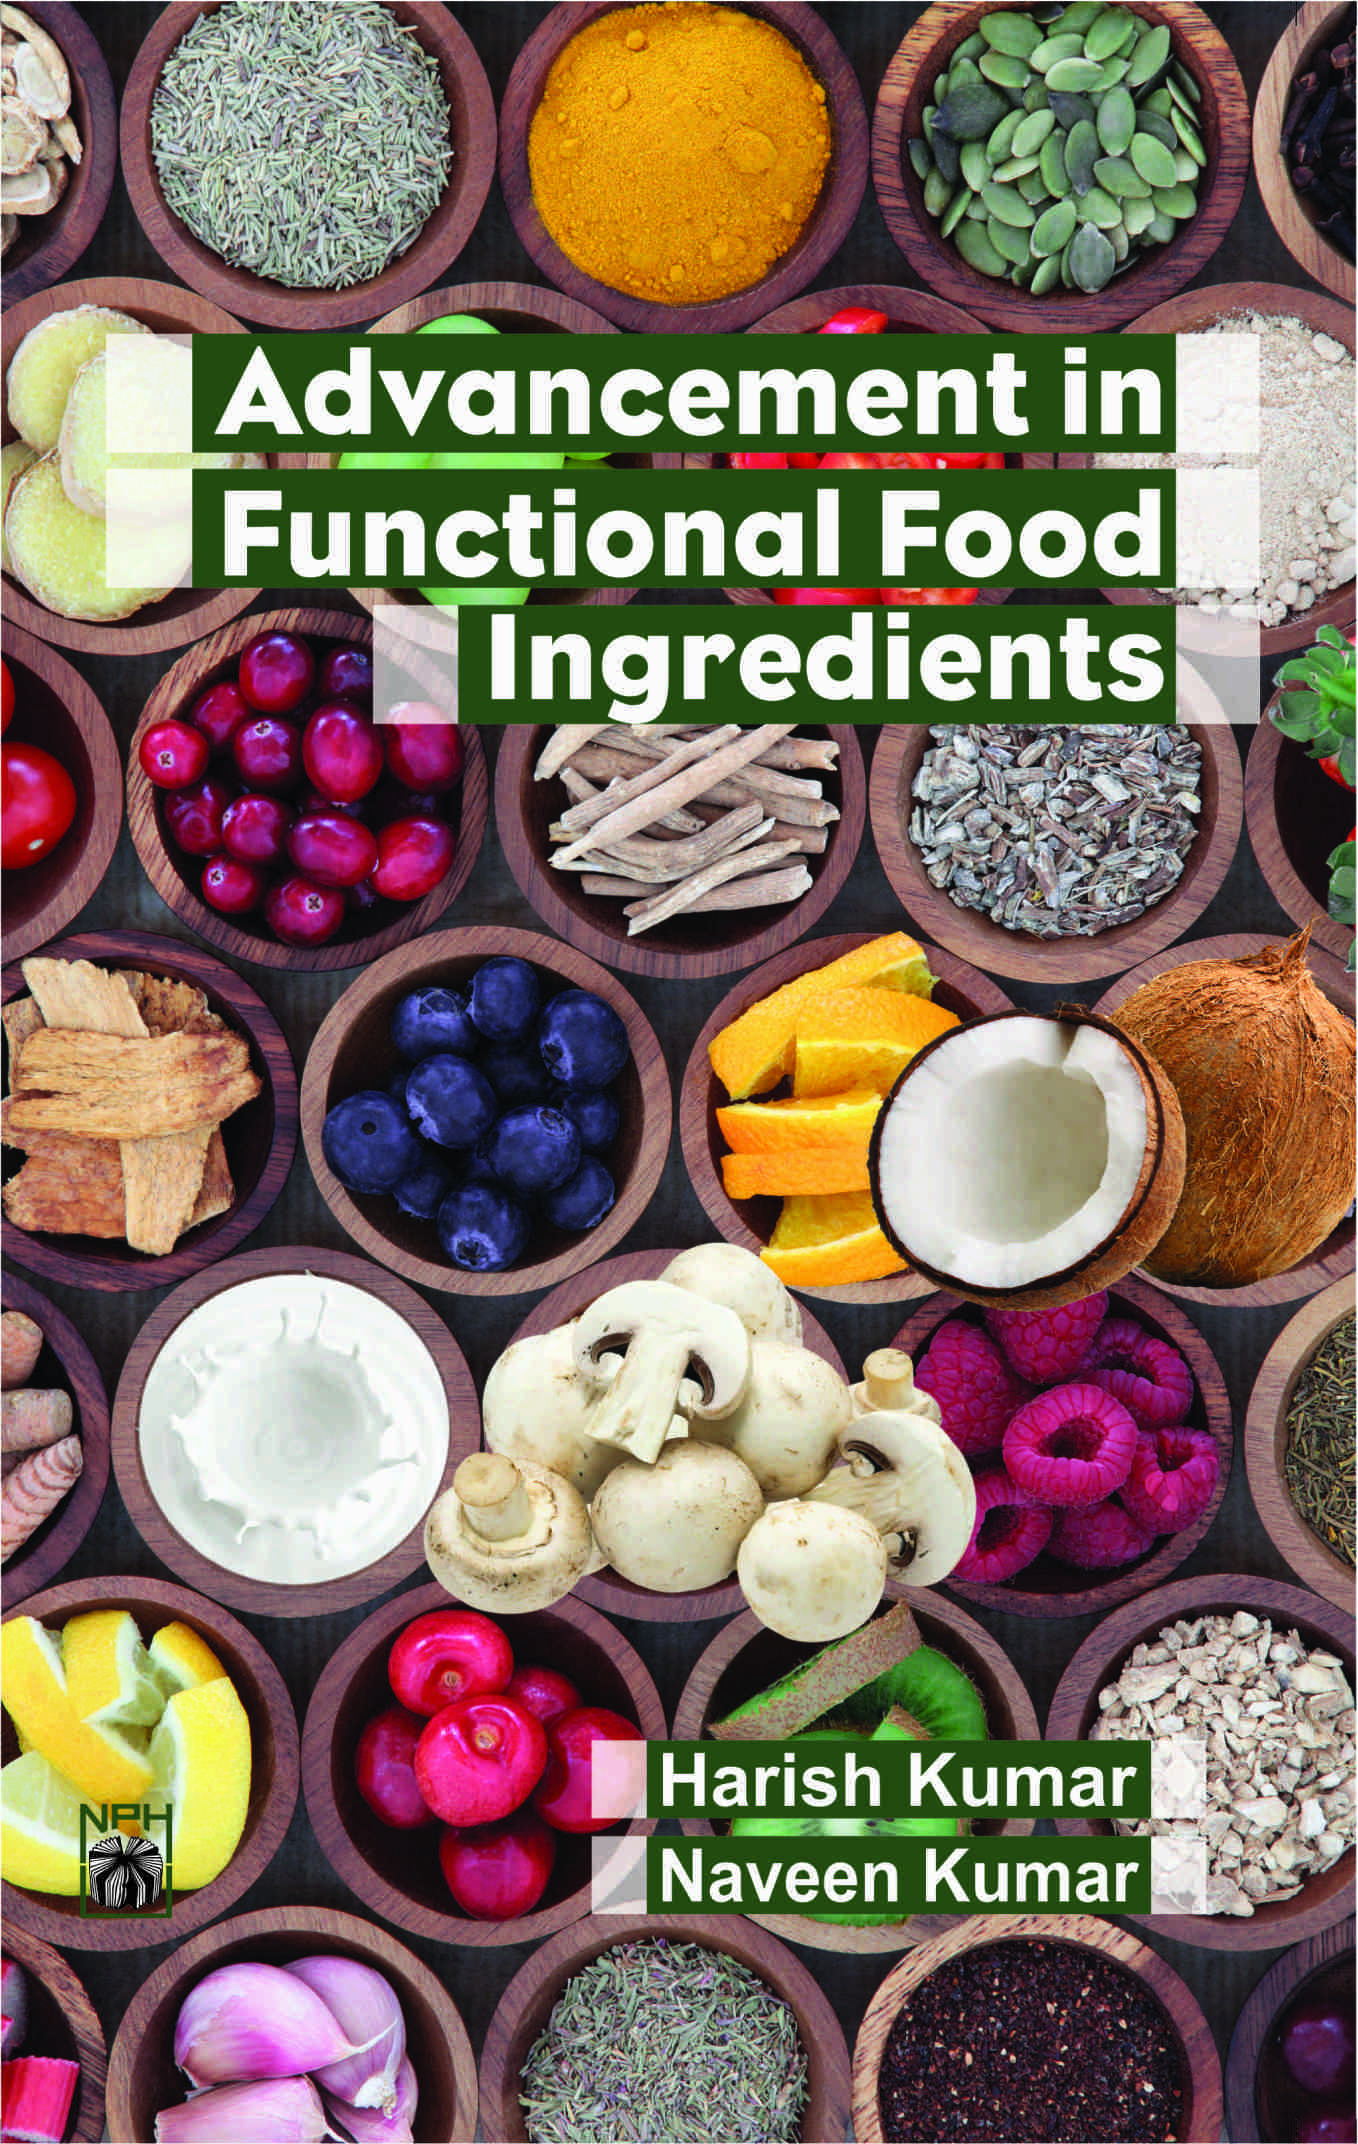 Advancement in Functional Food Ingredients